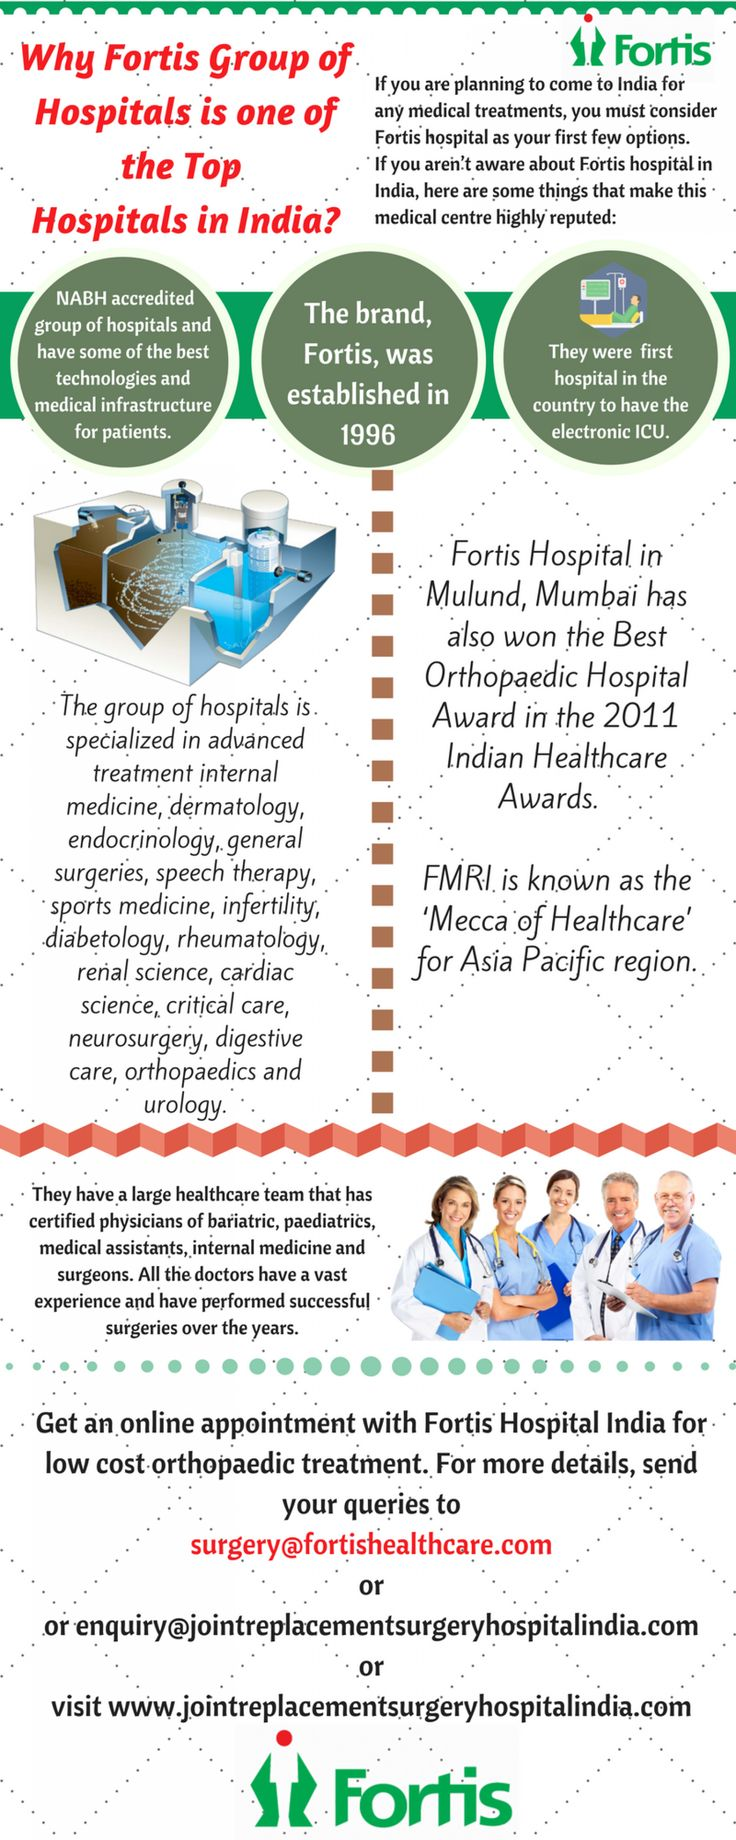 Why Fortis Group of Hospitals is one of the Top Hospitals in India? - See more at: https://visual.ly/community/Infographics/health/why-fortis-group-hospitals-one-top-hospitals-india#sthash.PXkCDH6x.dpuf